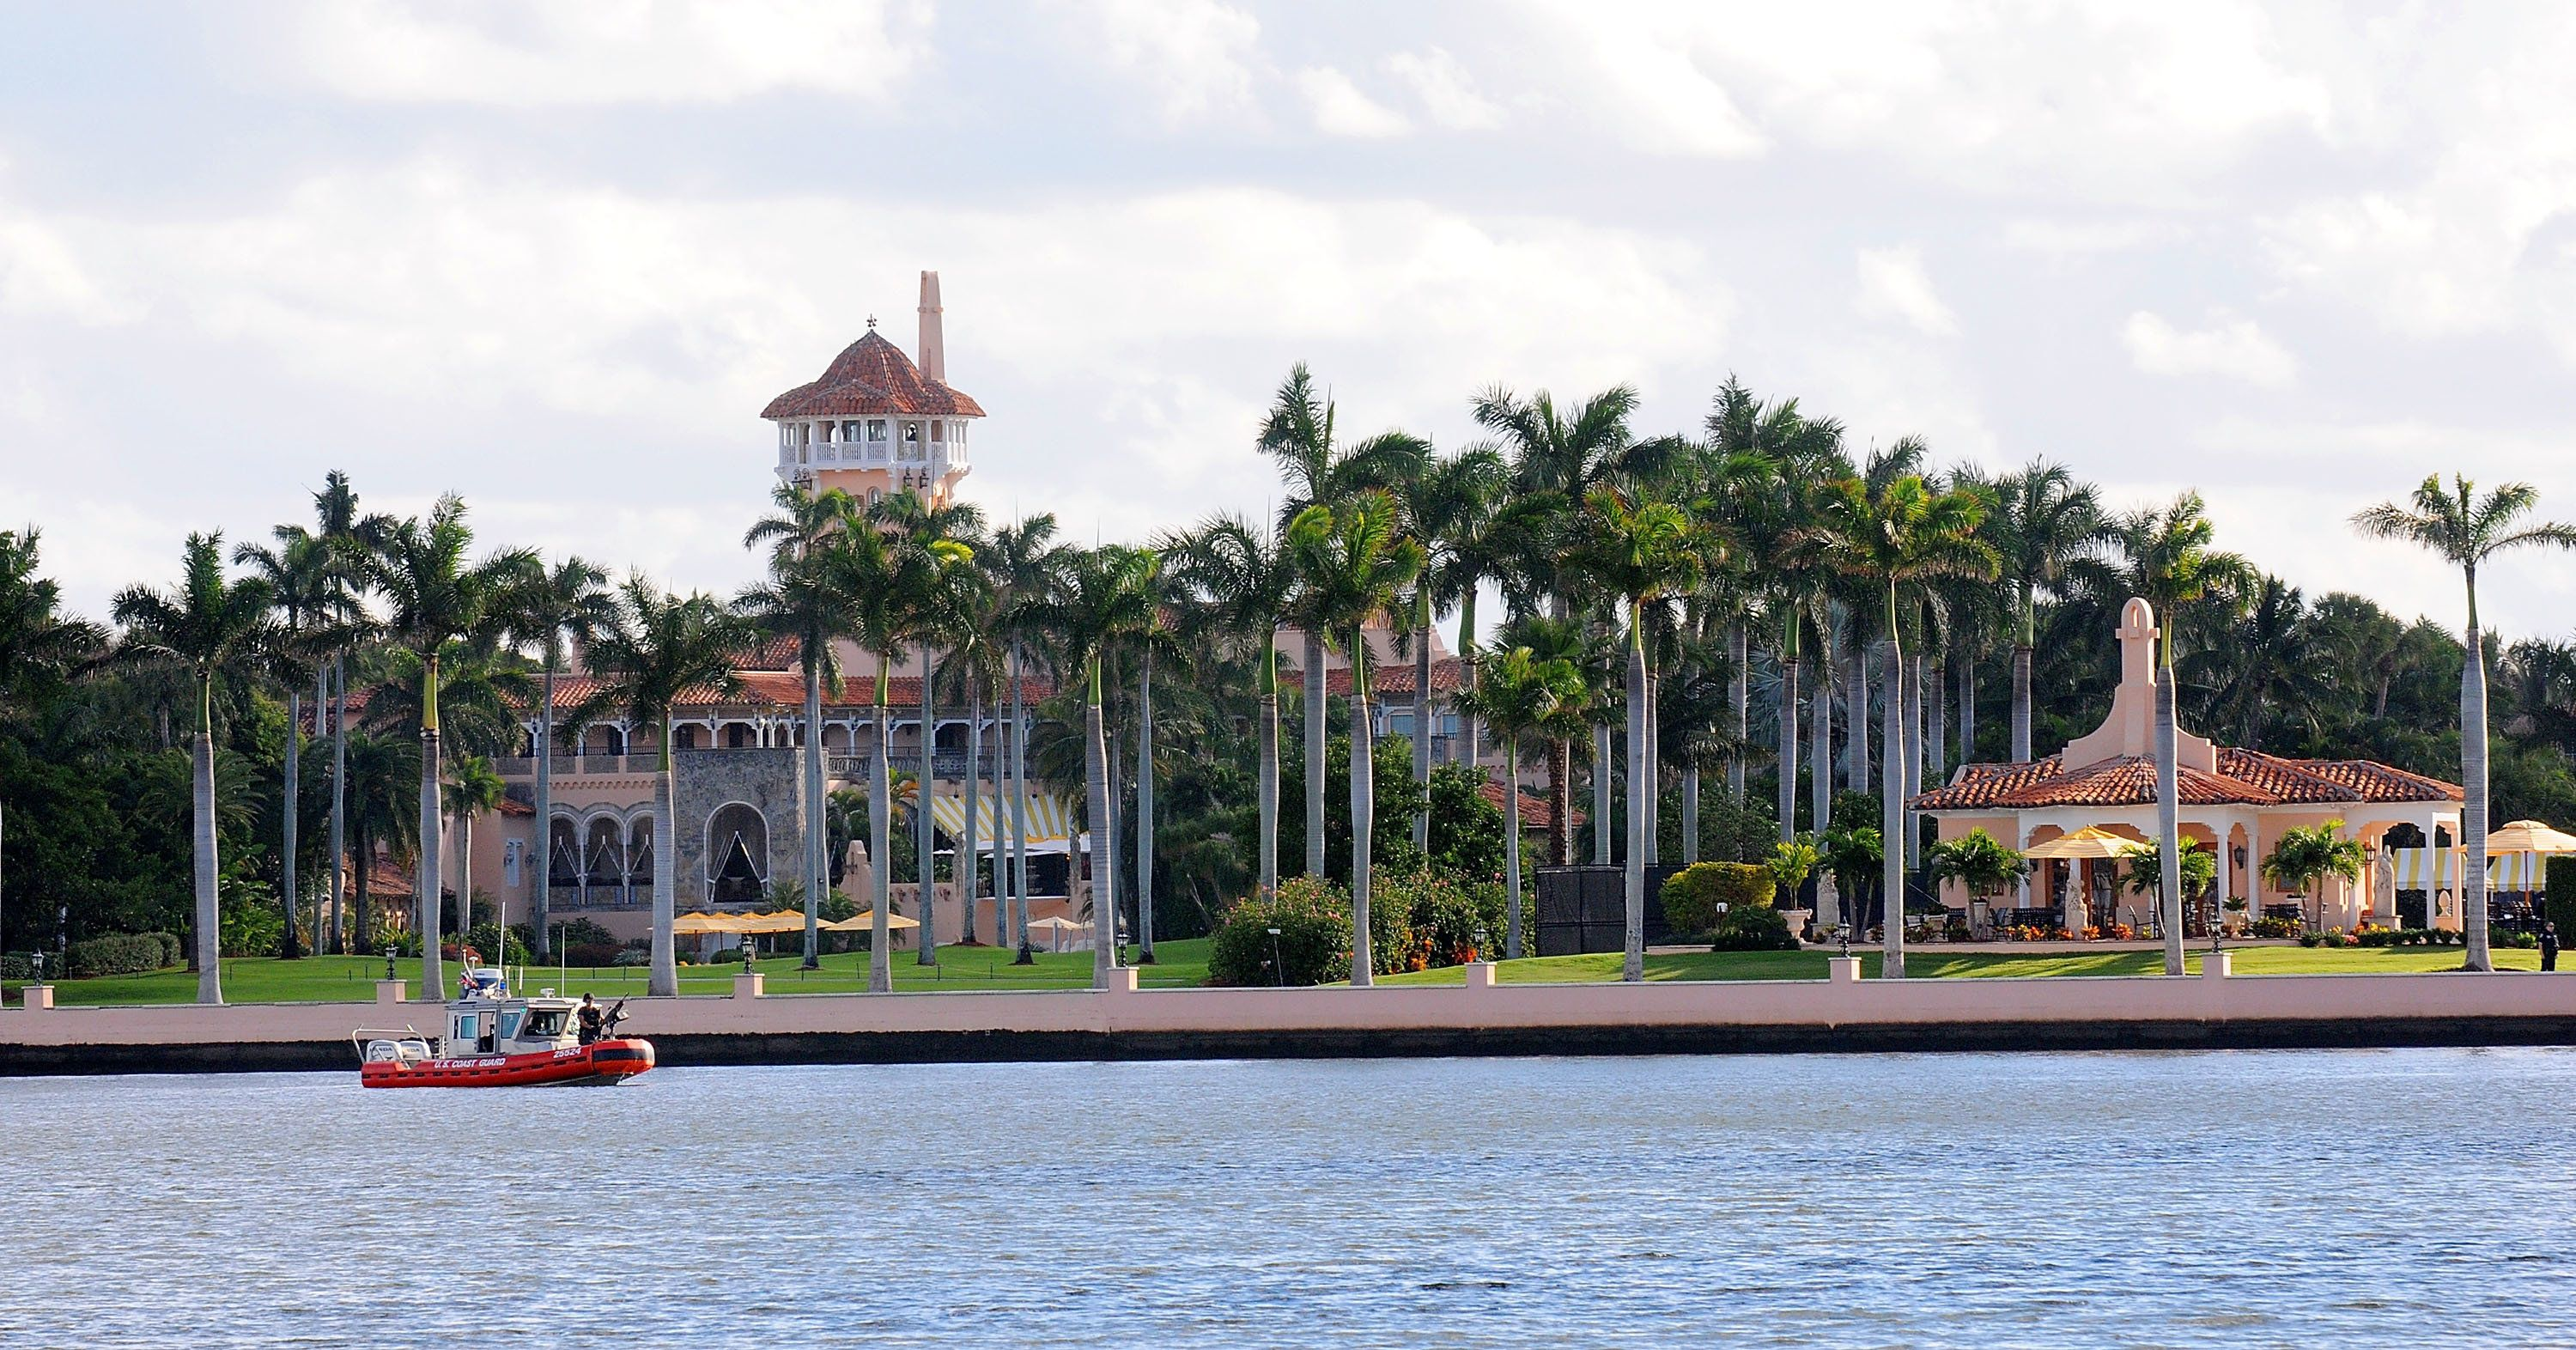 PALM BEACH, FL - NOVEMBER 23:  A US Coast Guard boat passes through the Mar-a-Lago Resort where President-elect Donald Trump will be spending Thanksgiving  on November 23, 2016 in Palm Beach, Florida.  The Trump family has spent many of their holidays at their South Florida home and security is expected to be tight in the area. (Photo by Gerardo Mora/Getty Images)